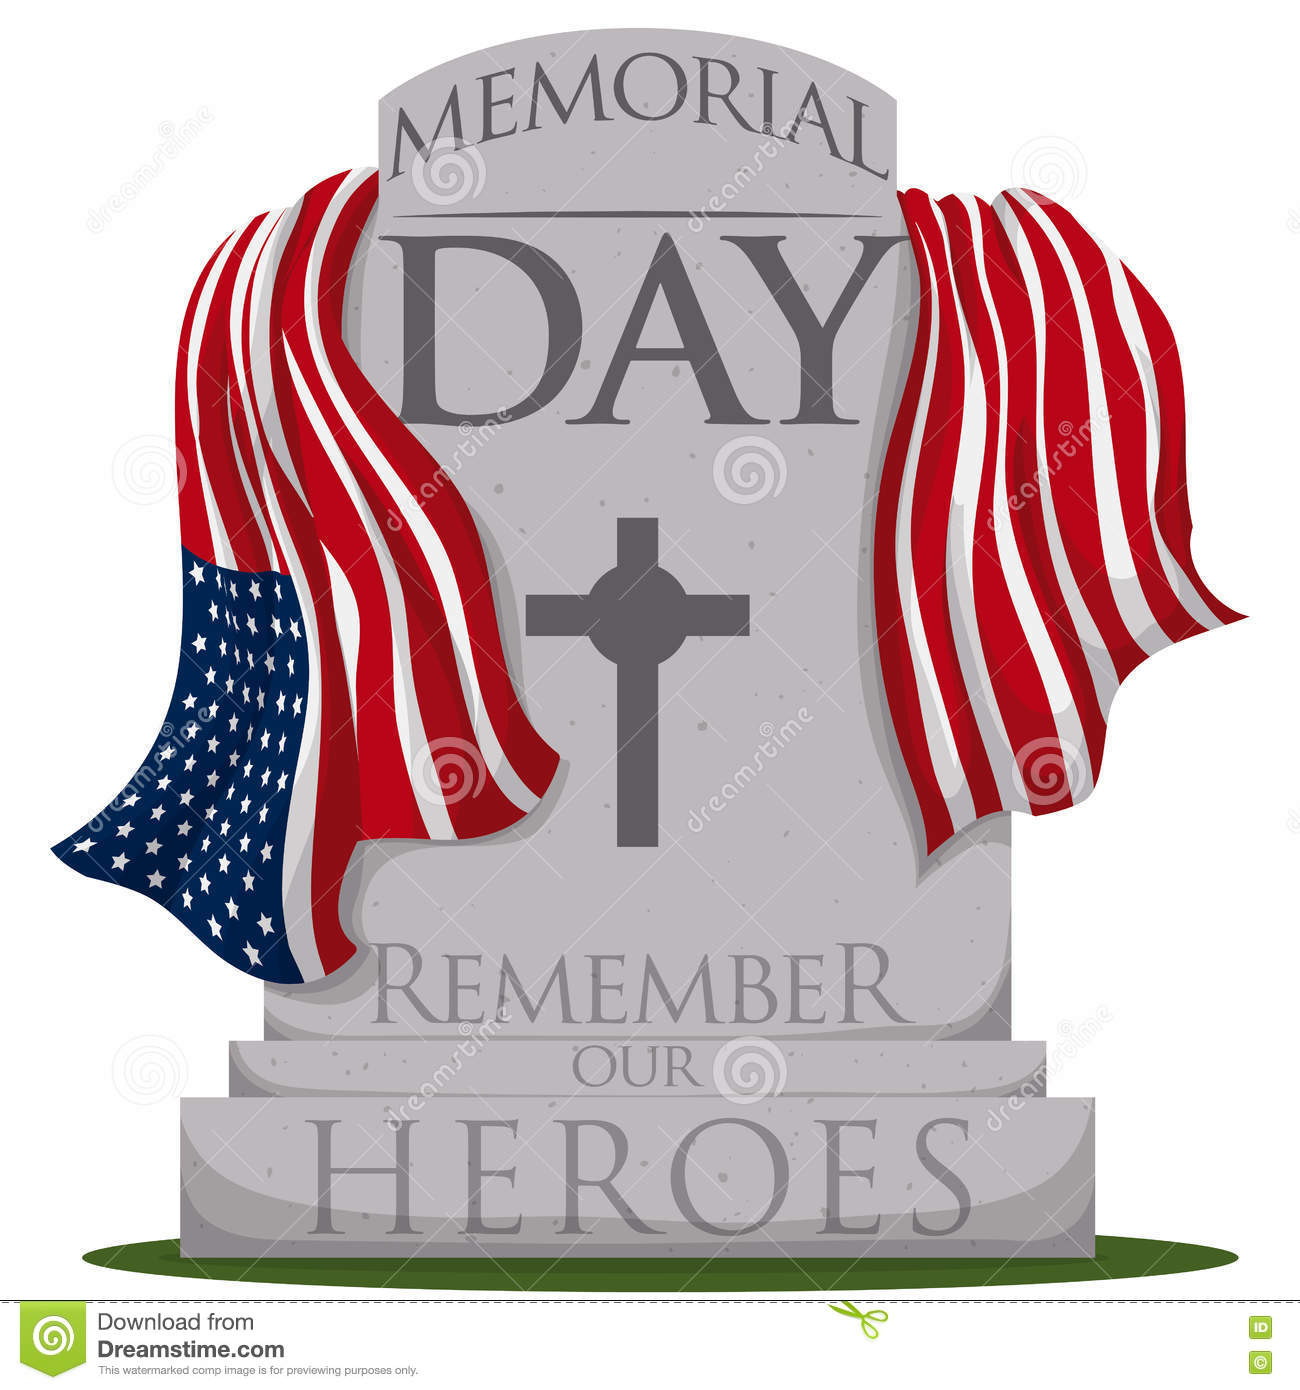 Traditional Gravestone With Flag For Memorial Day, Vector.